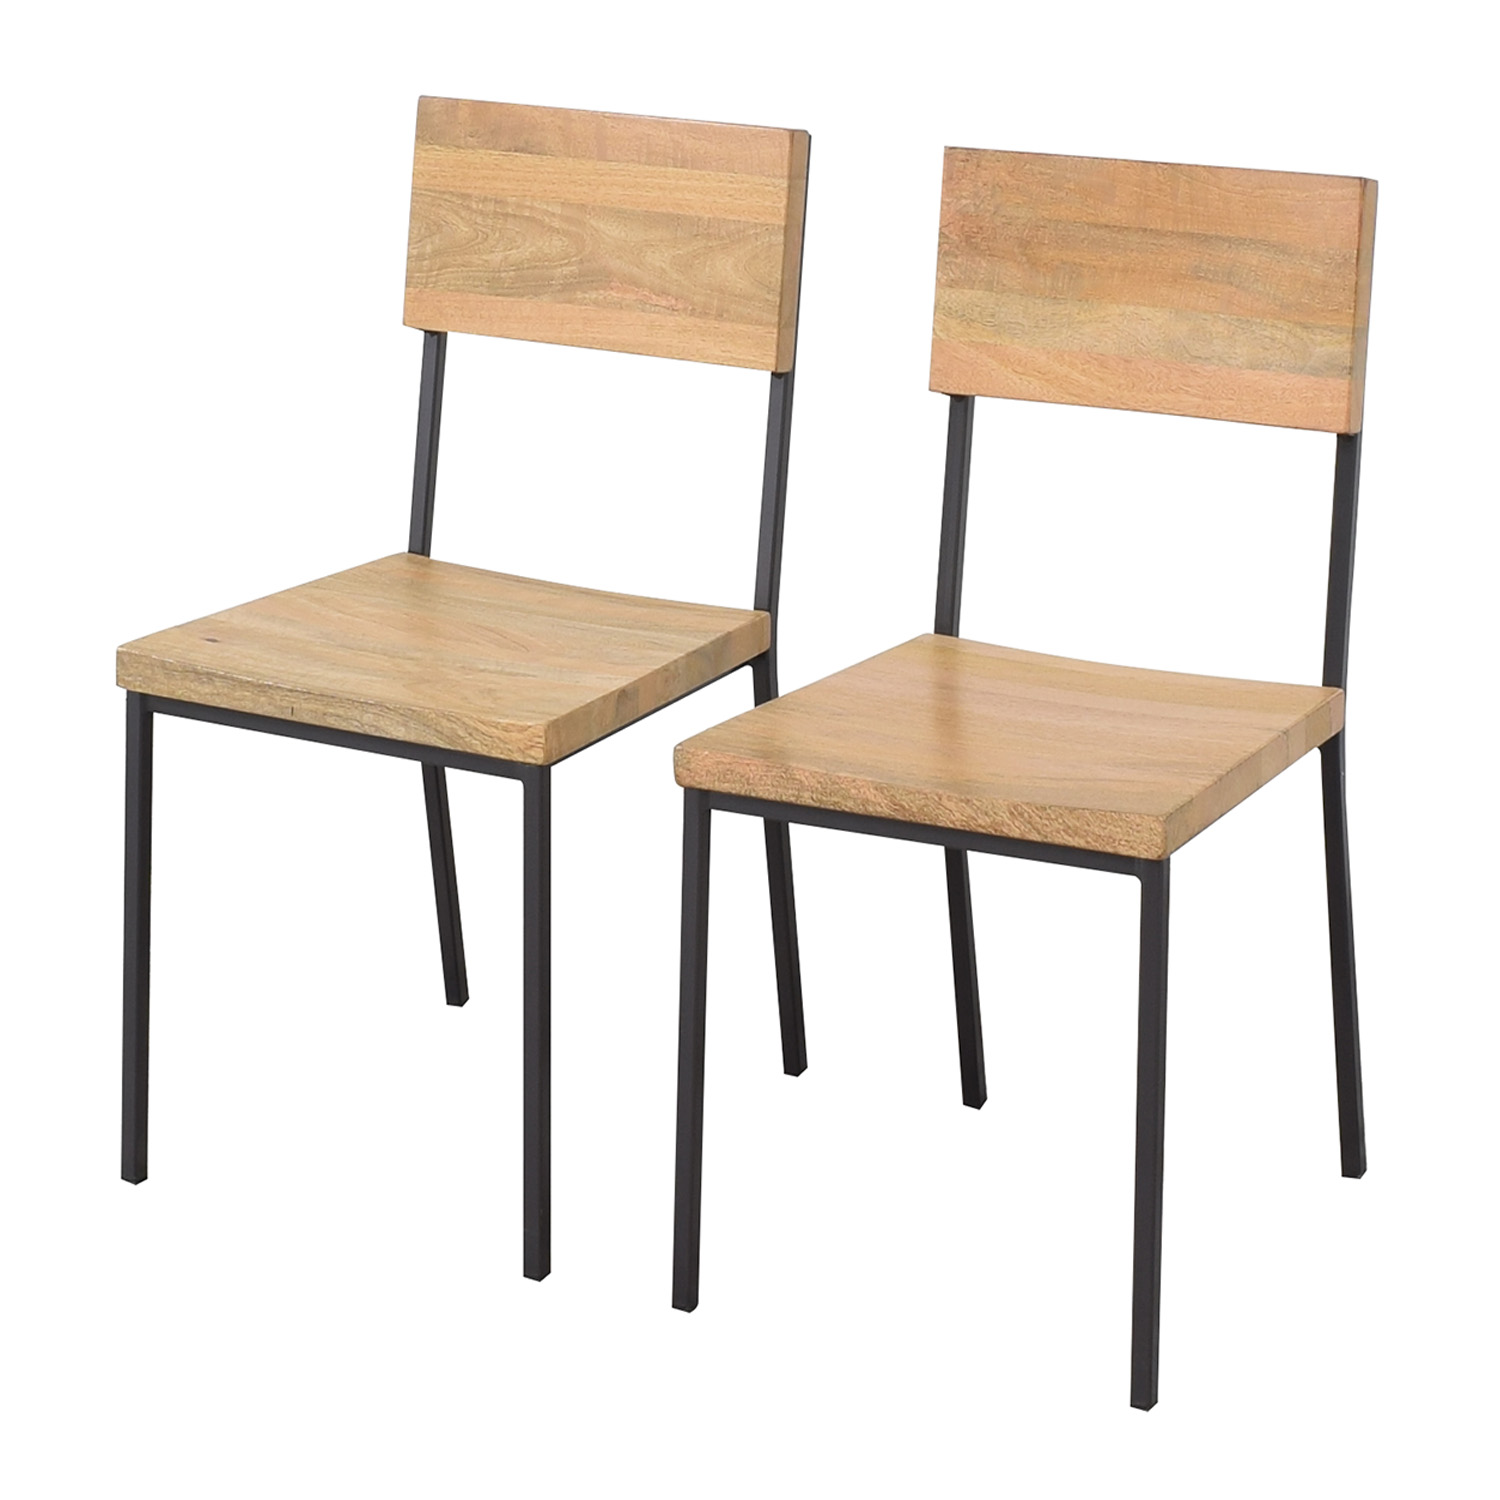 West Elm West Elm Rustic Dining Chairs second hand